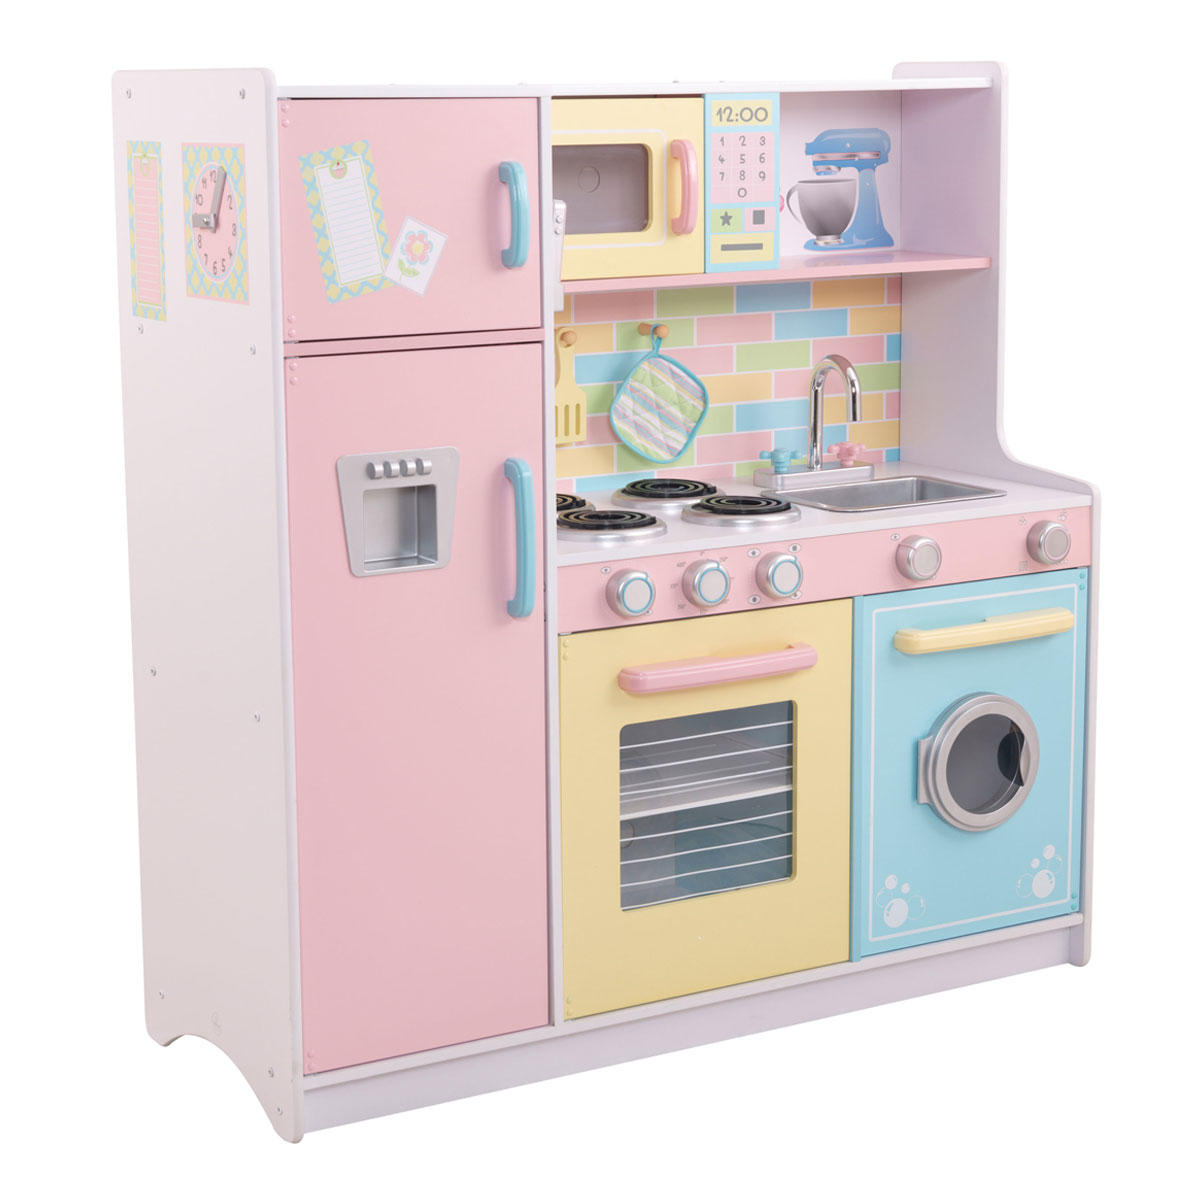 Kidkraft cucina deluxe pastel 53336 pirum for Set cuisine enfant